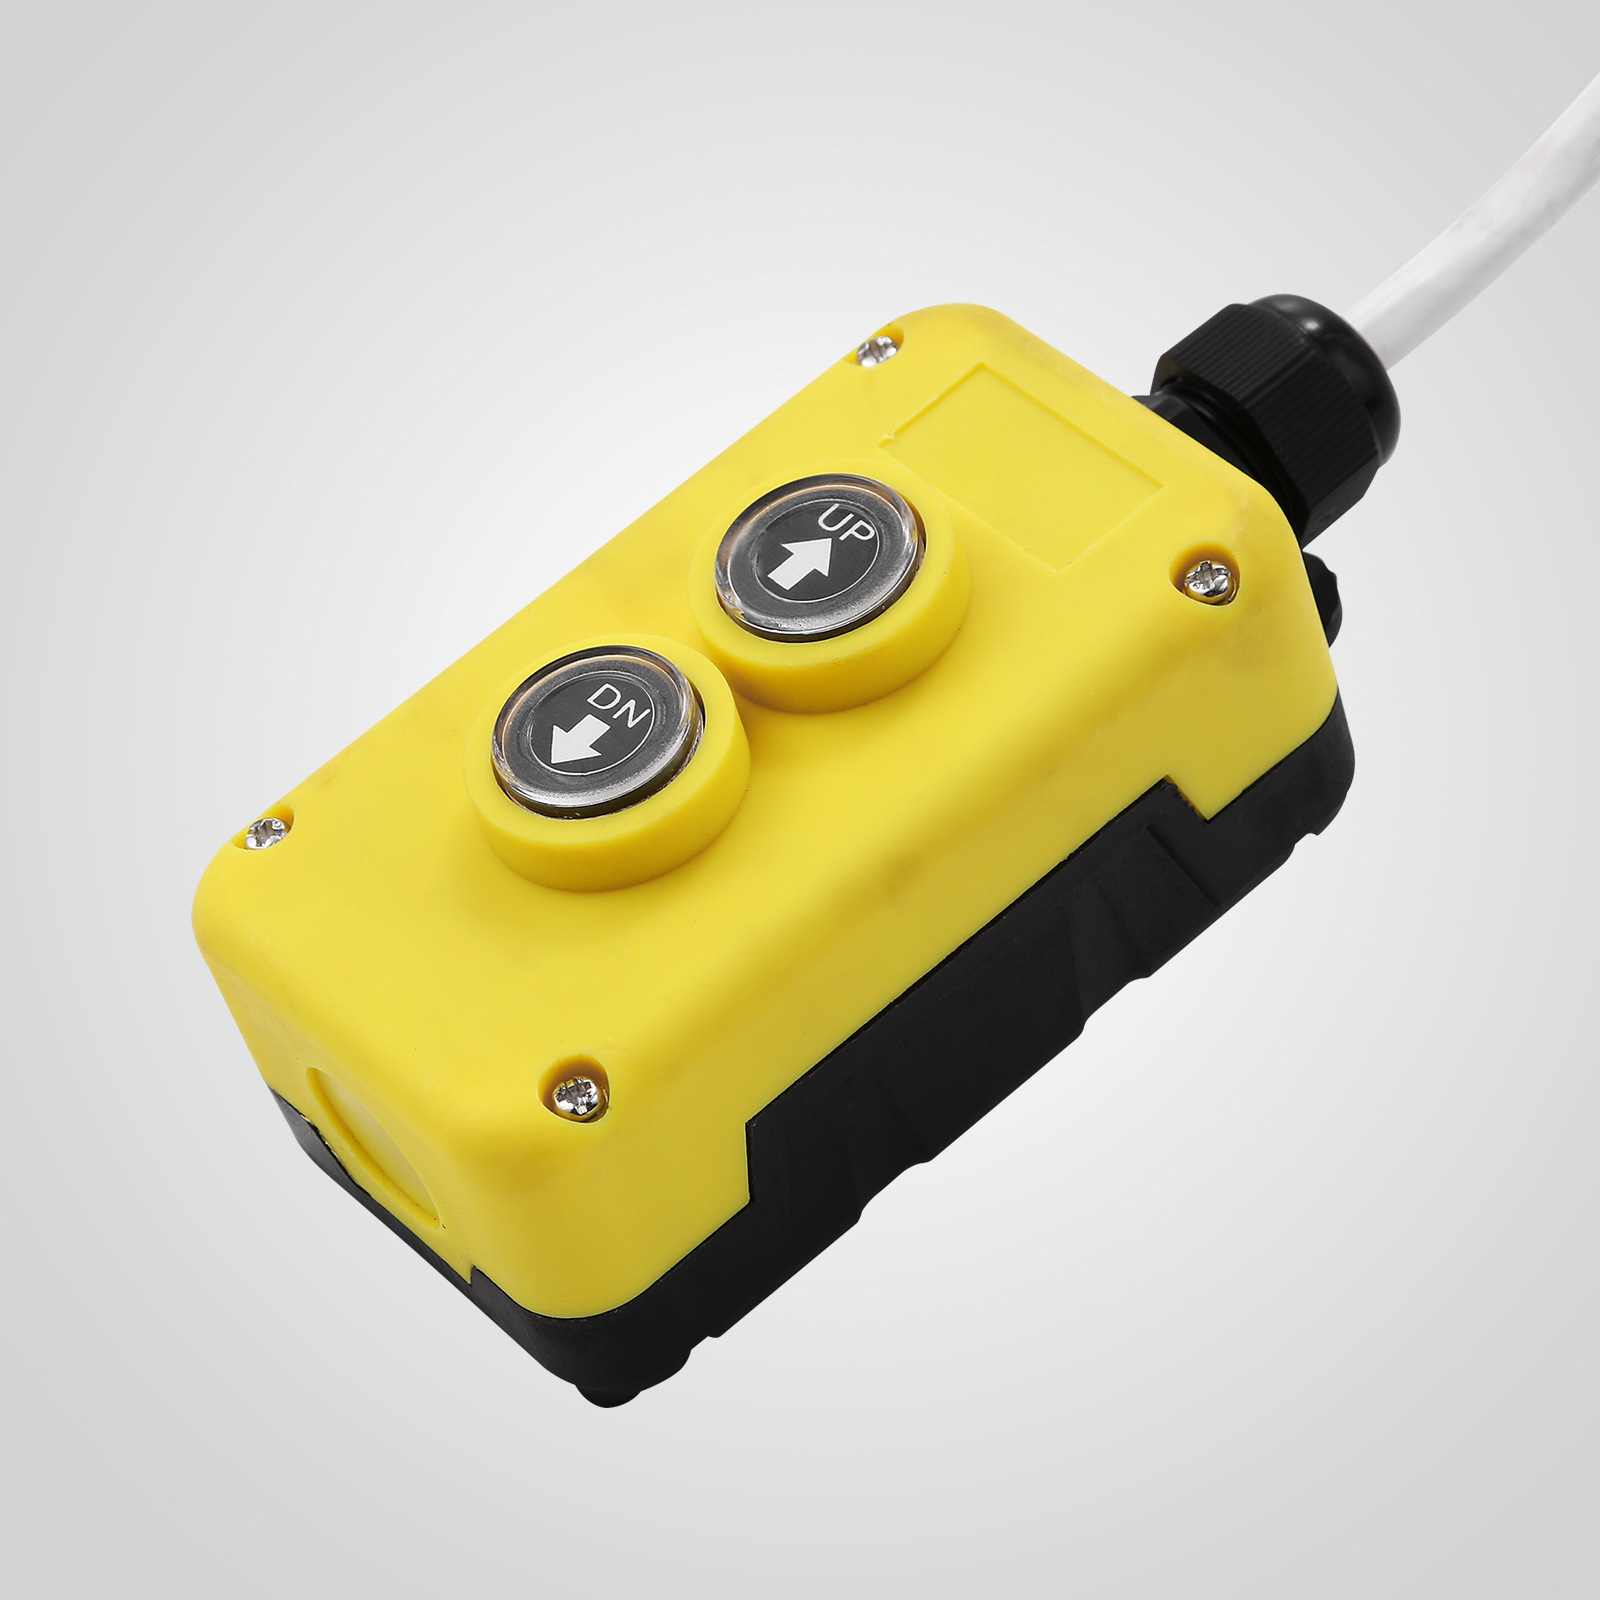 Dump Body Lever Actuated Switch : Quart double acting hydraulic pump dc v power unit